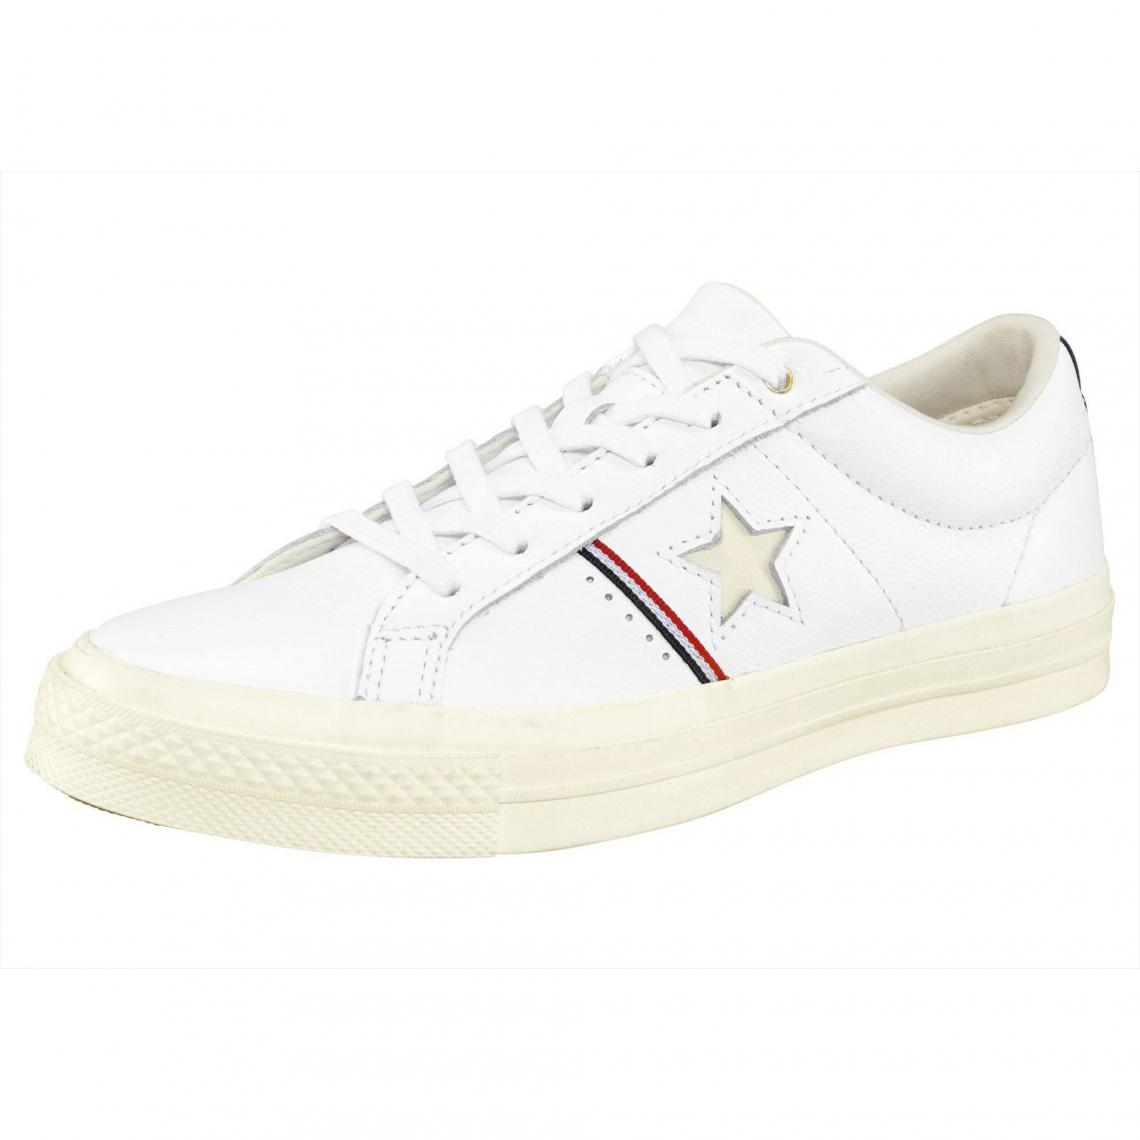 b9ca89ff521 Baskets basses homme Converse One Star Ox - Blanc Converse Homme